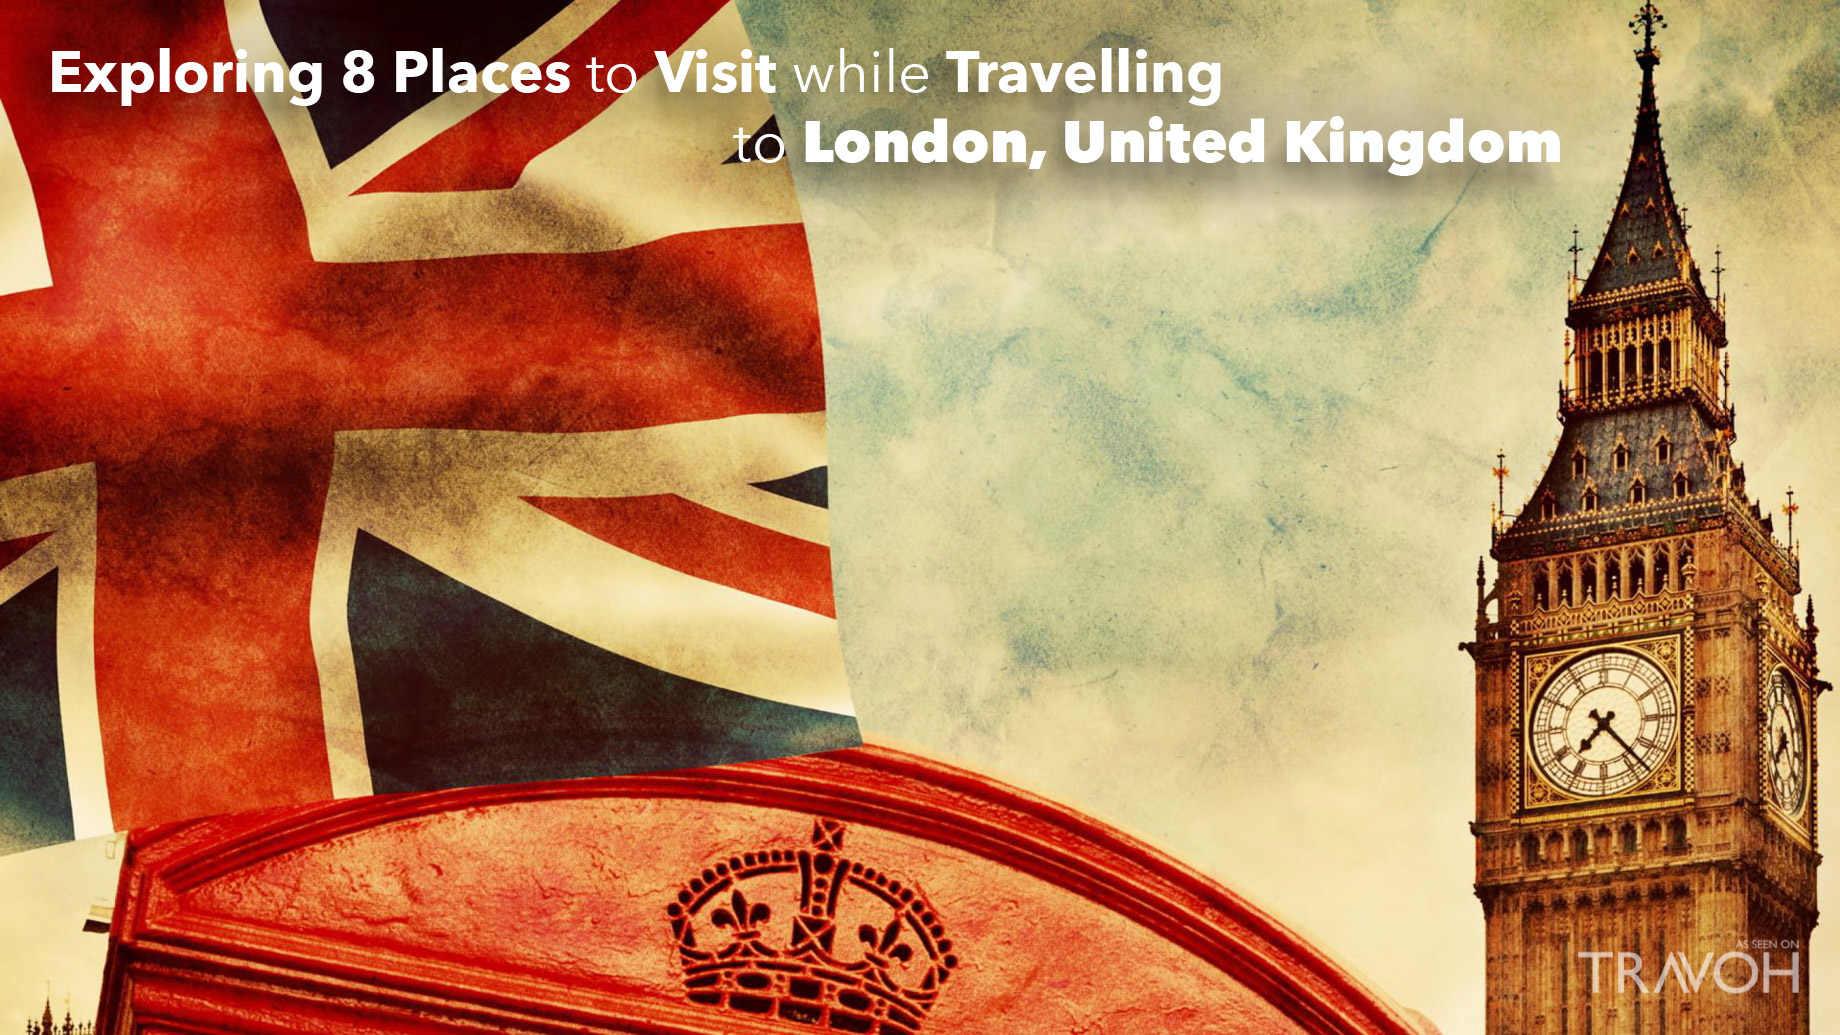 Exploring 8 Places to Visit while Traveling to London, United Kingdom